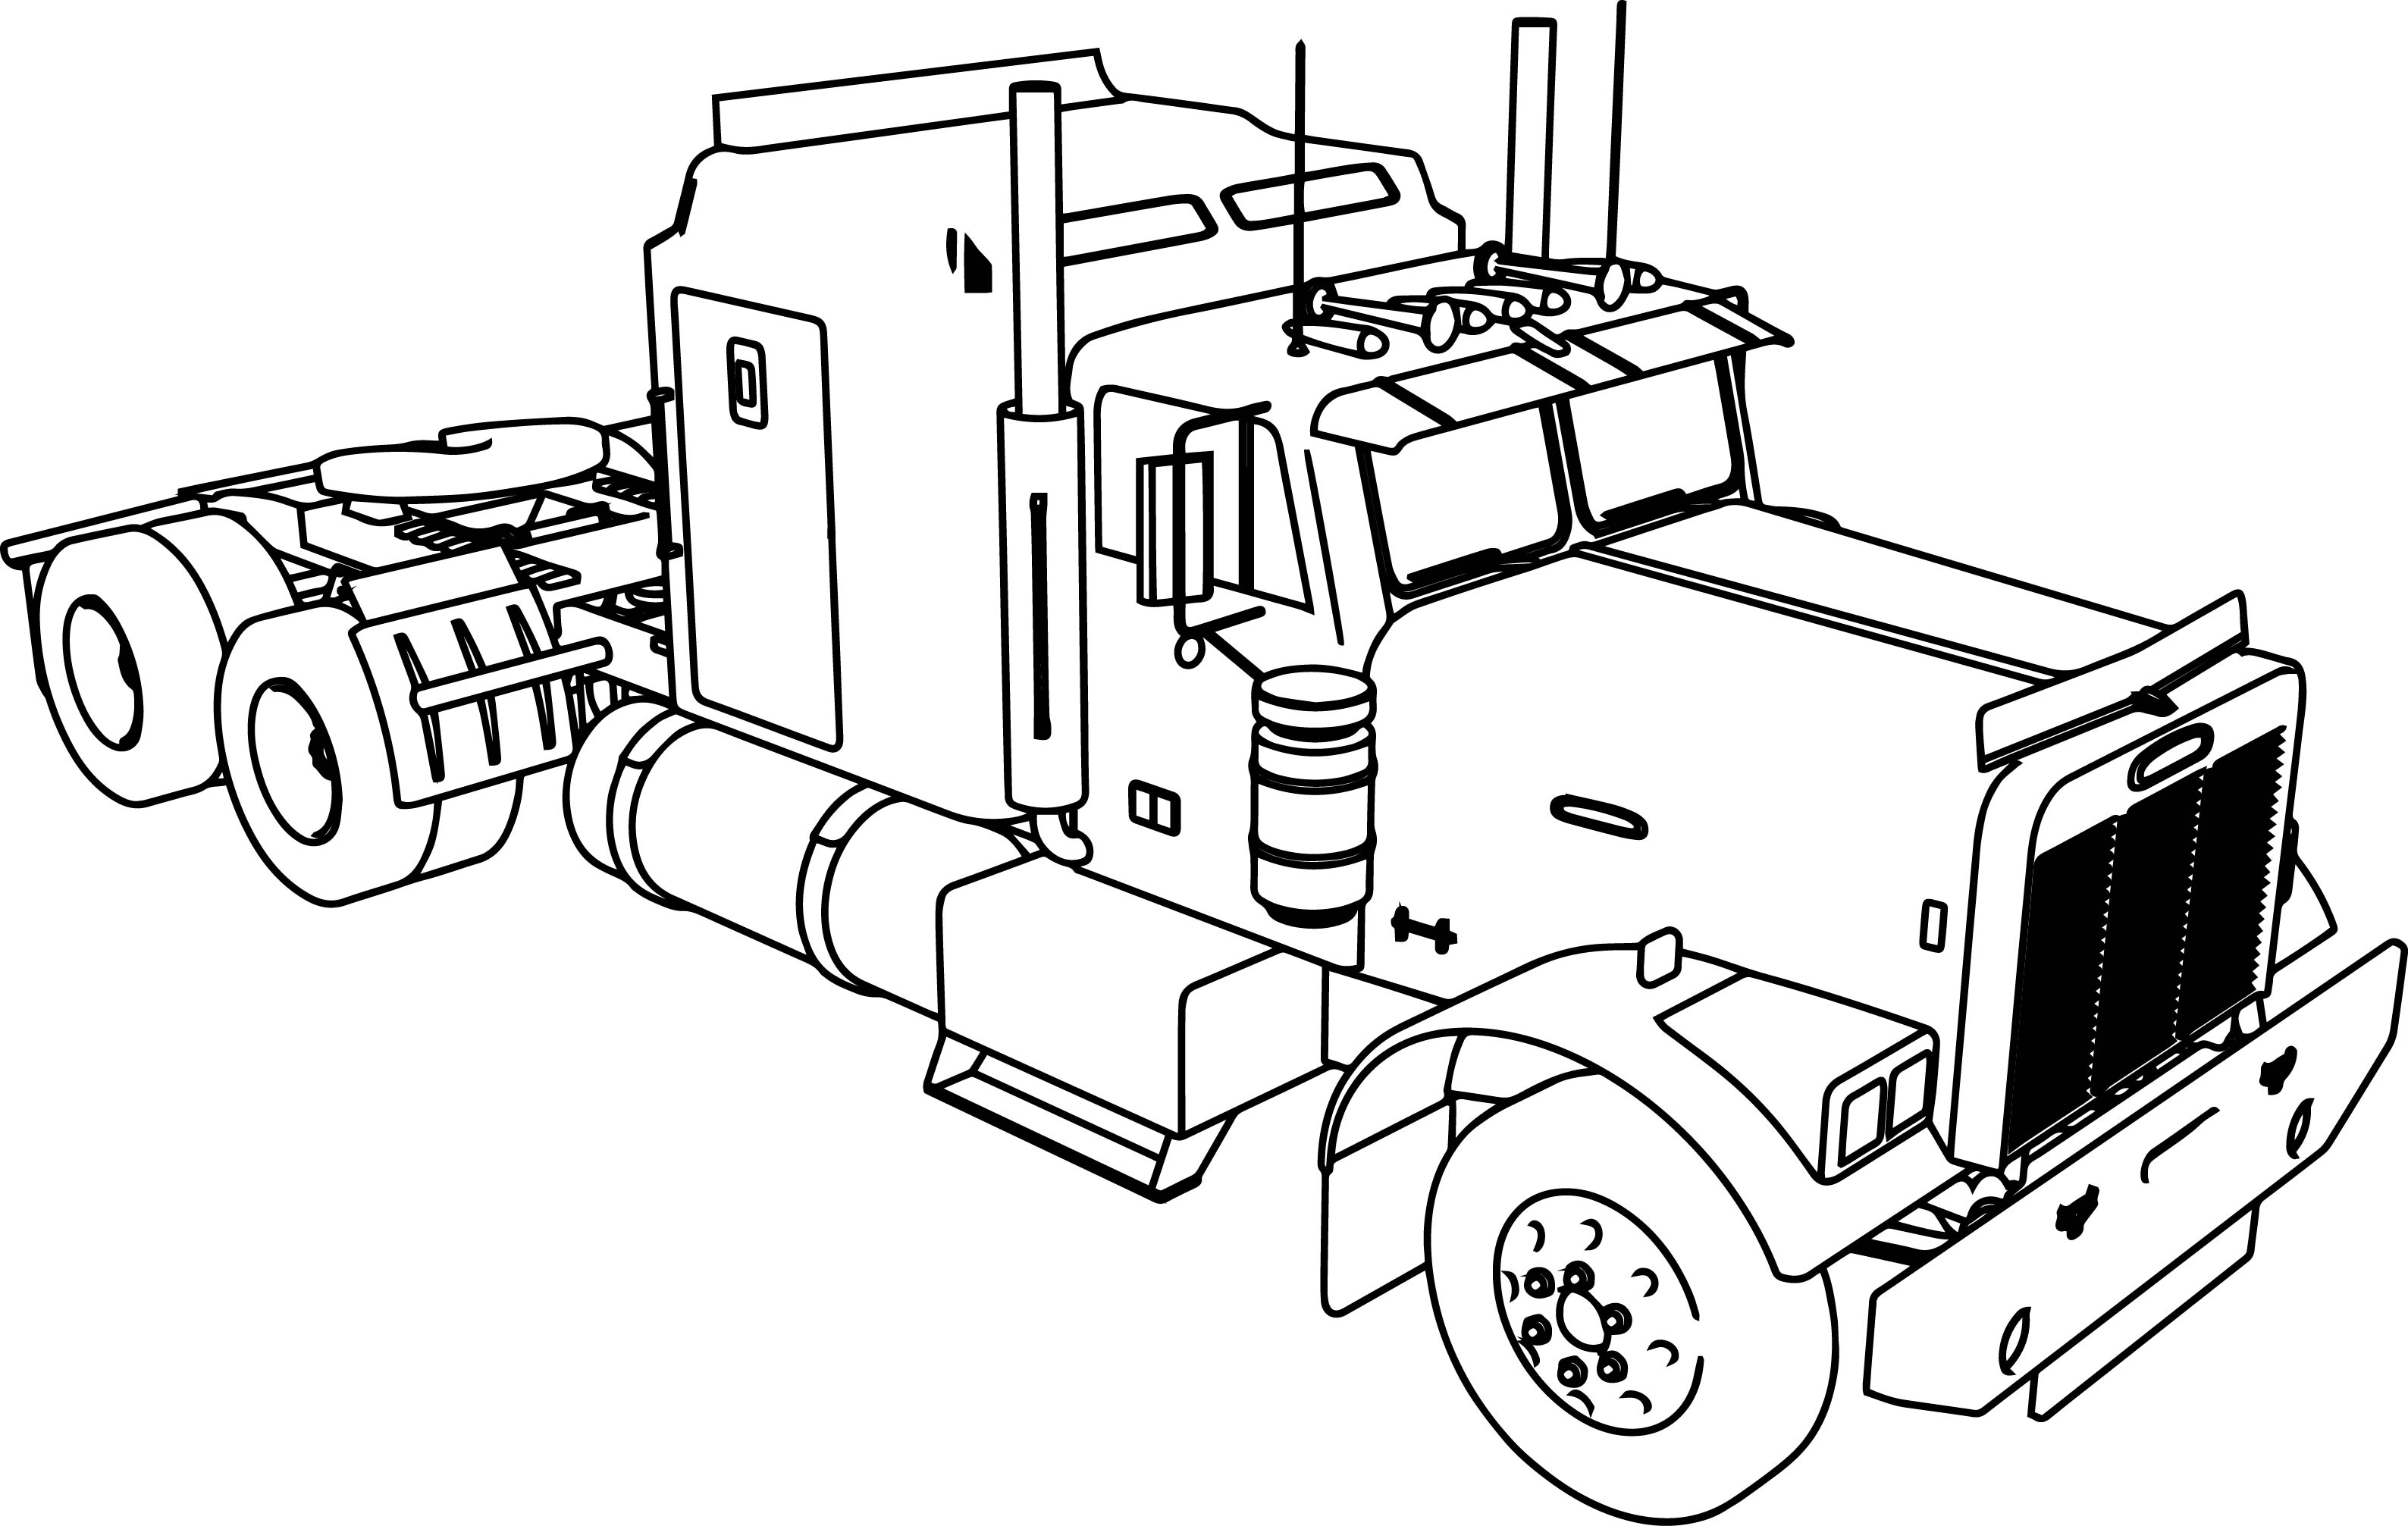 Dodge Truck Drawing At Free For Personal Use 1988 Dakota Wiring Diagram 3176x2013 Coloring Pages Of Flat Tow Trucks Bestofcoloring Pick Up